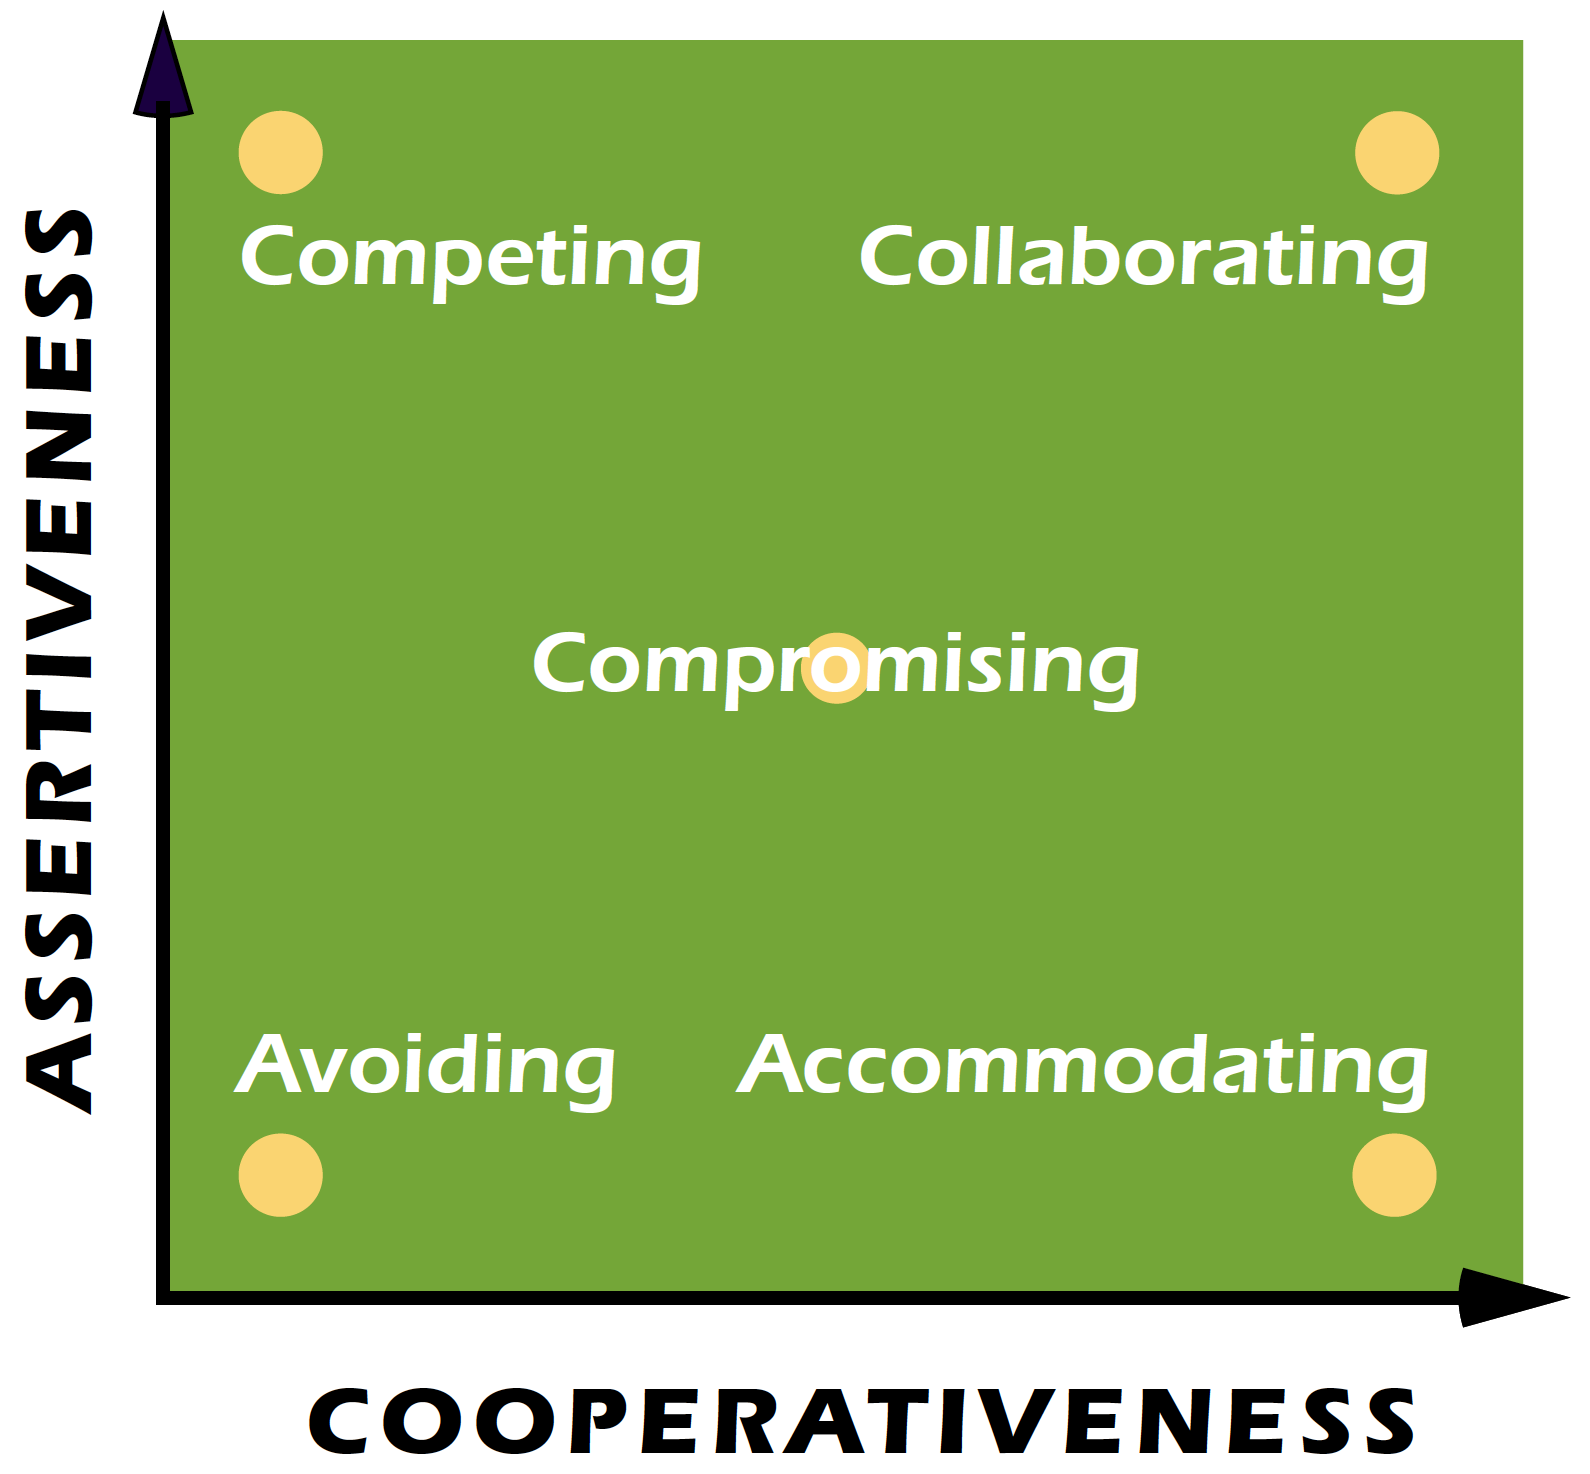 The Five Conflict Modes on the TKI Conflict Model